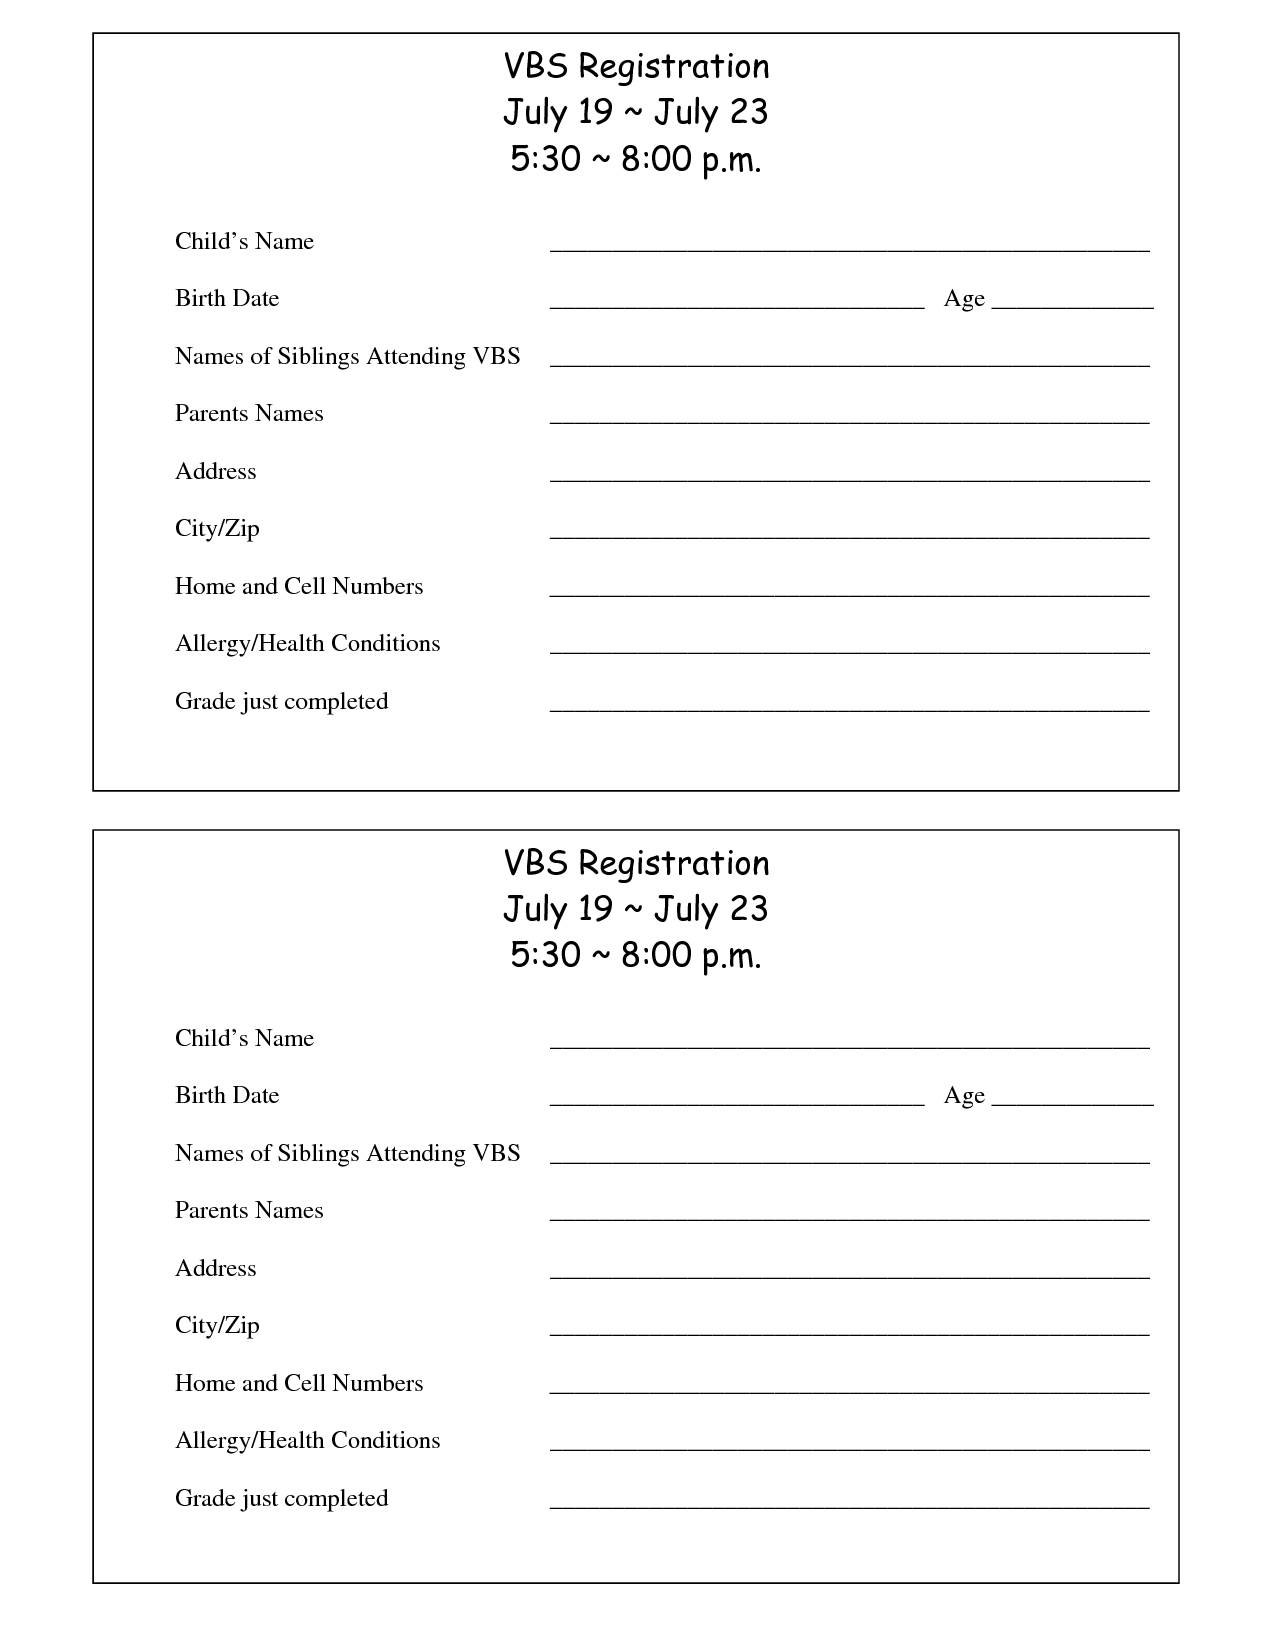 picture about Printable Registration Form Template referred to as Vbs Registration Style Document cellular discoveries